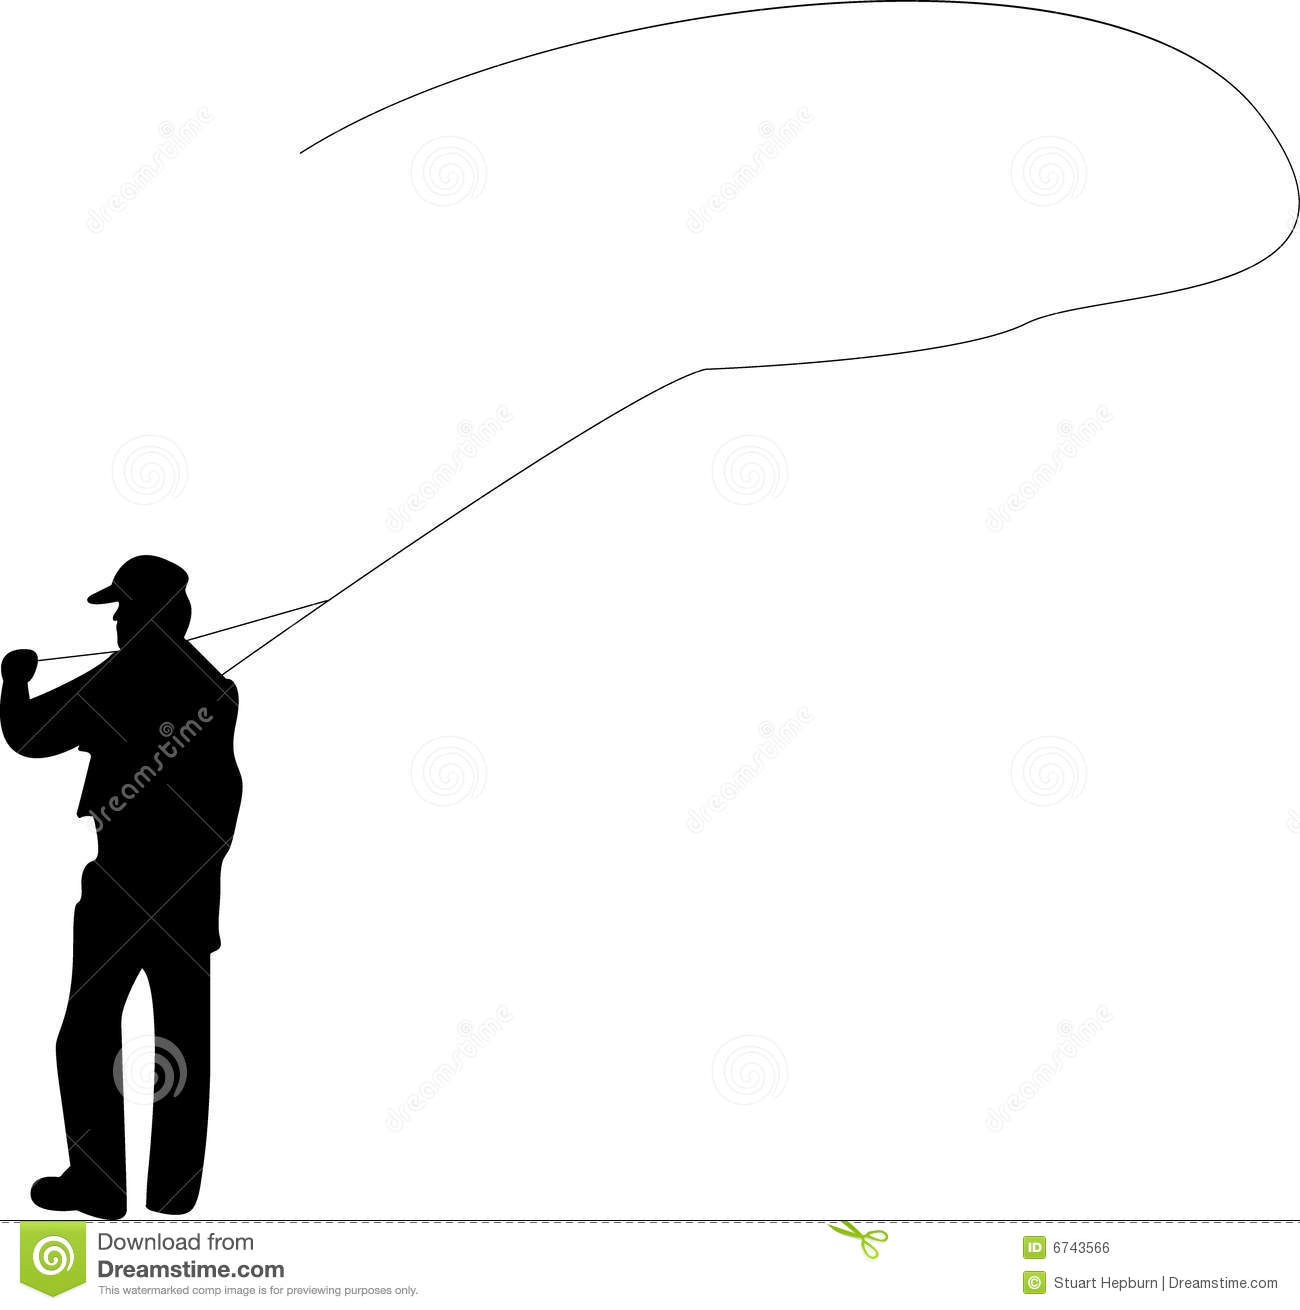 fly fishing clipart panda free clipart images rh clipartpanda com fly fishing clipart images fly fishing design clipart